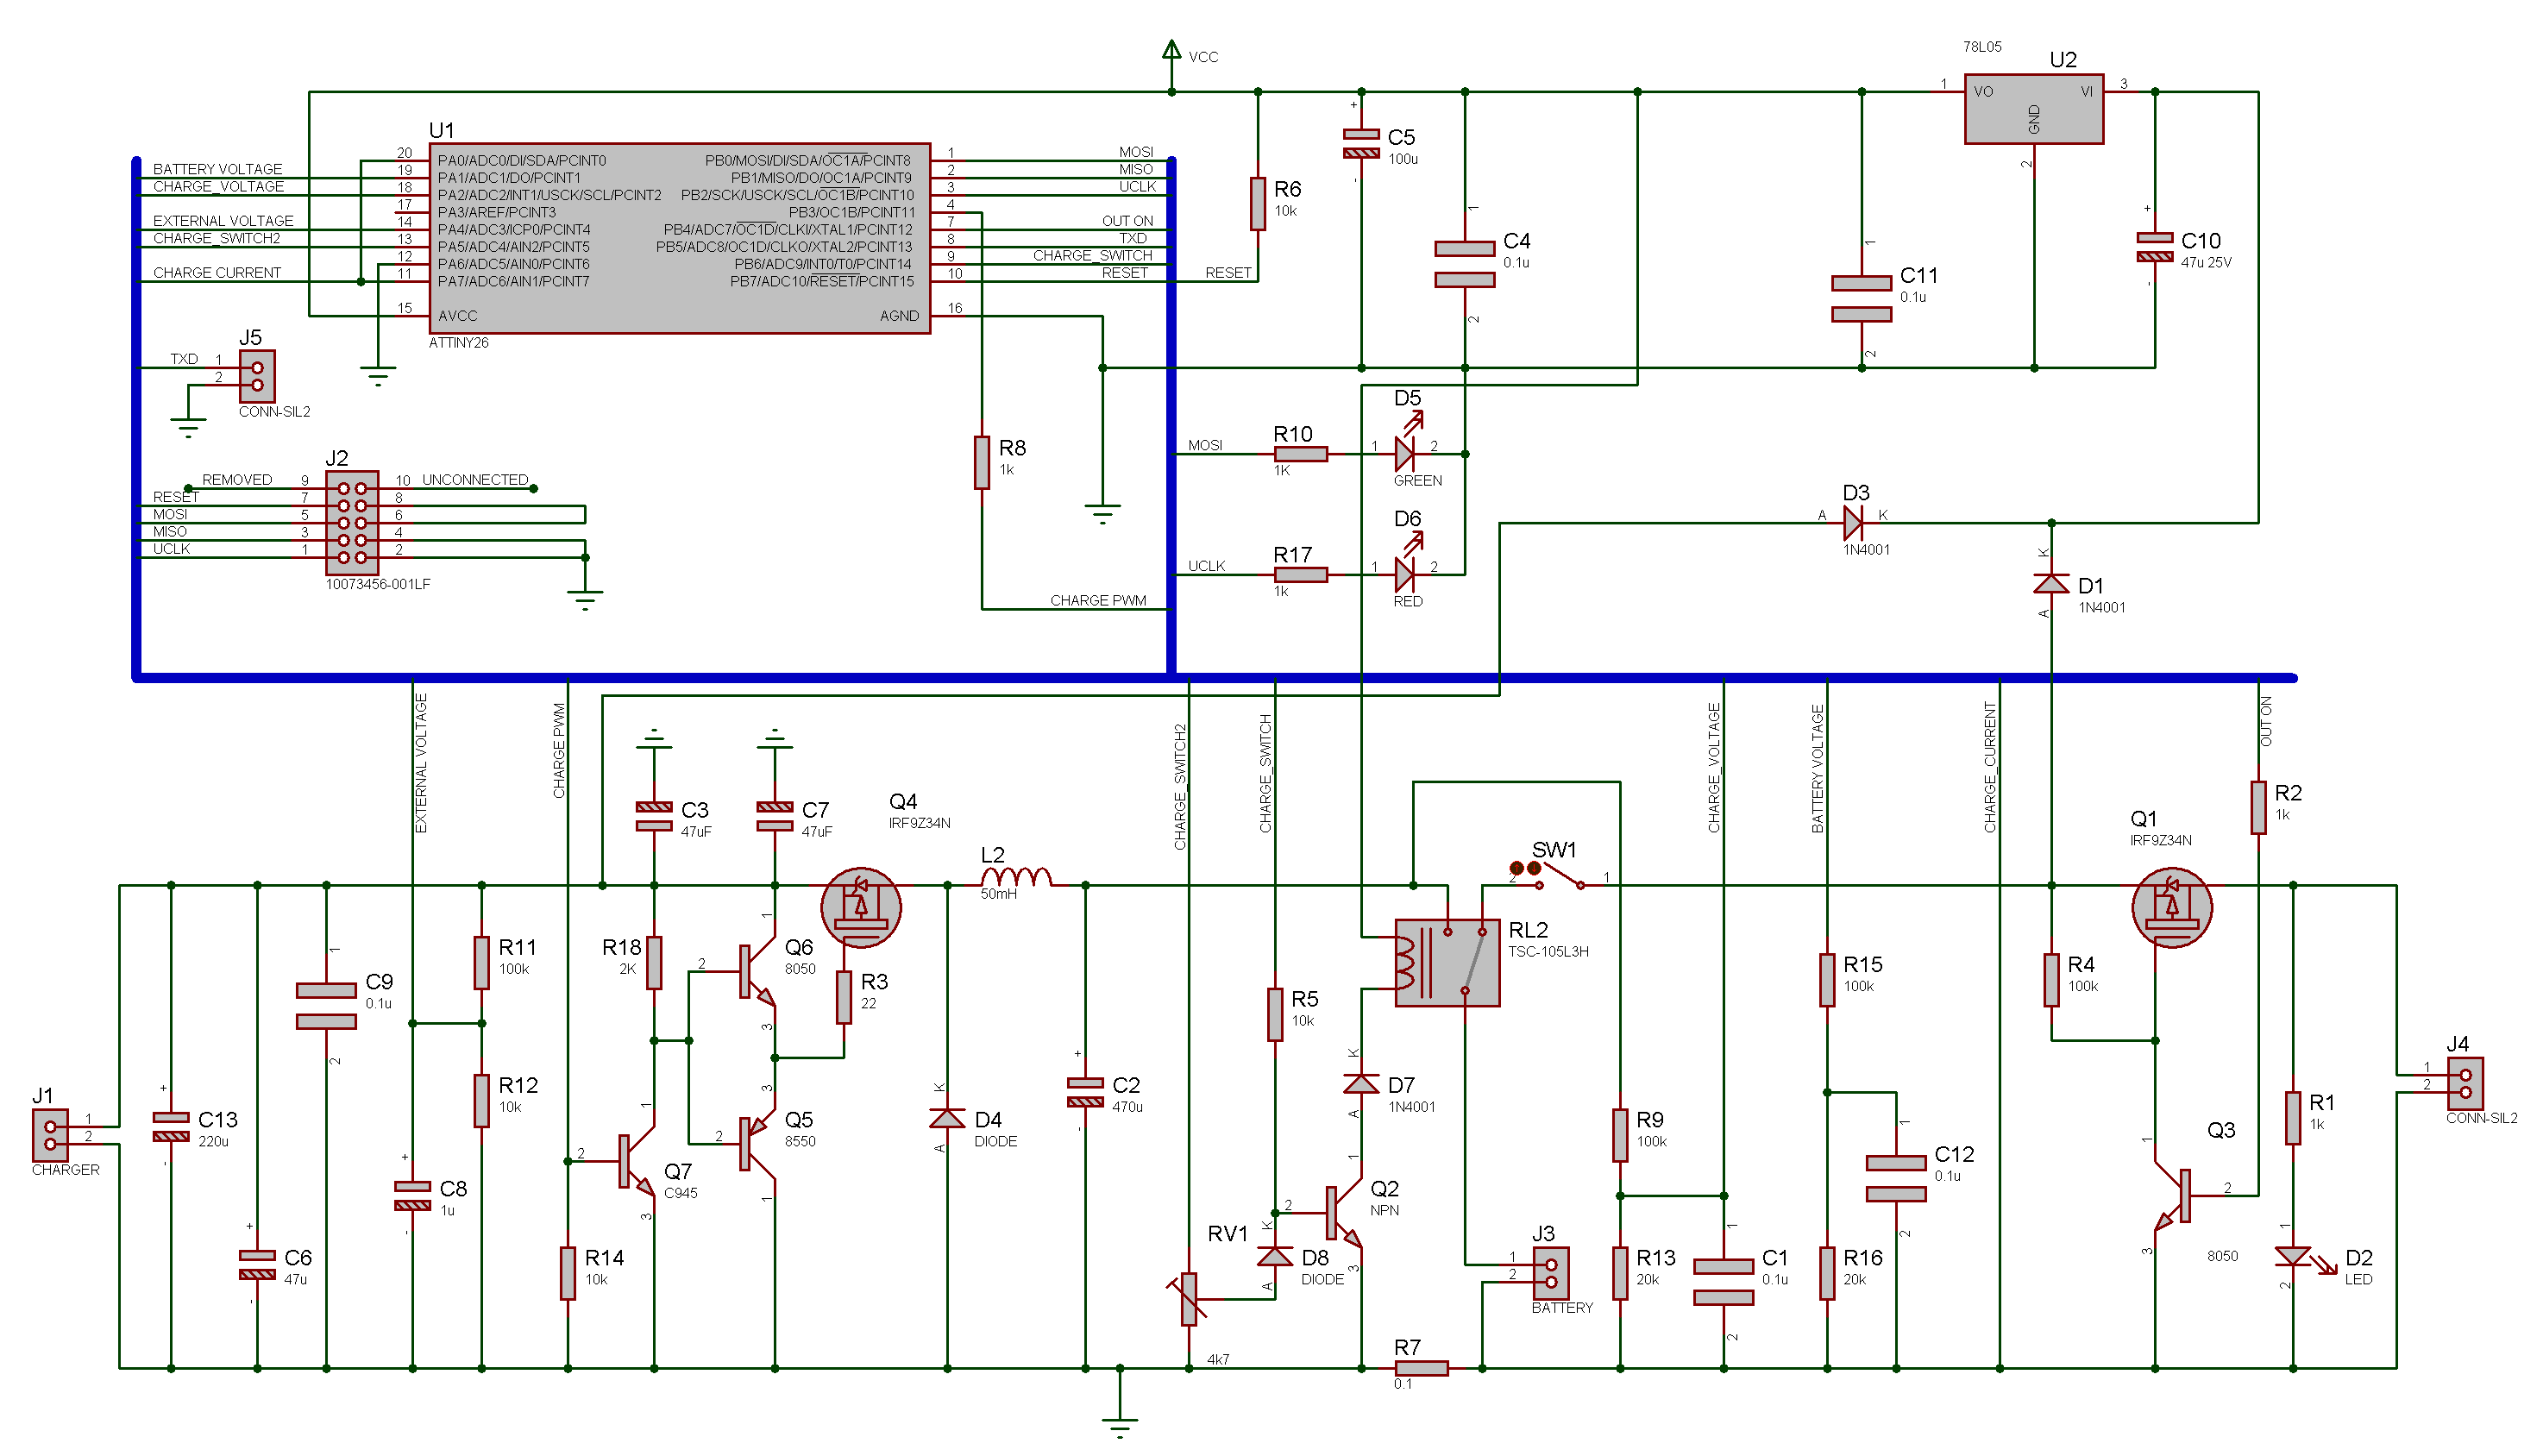 Roman Lut Roomba Pro Sla Battery Mod In Car Charger And Switcher Circuit For Charge Controller Schematics Click To See Larger Picture